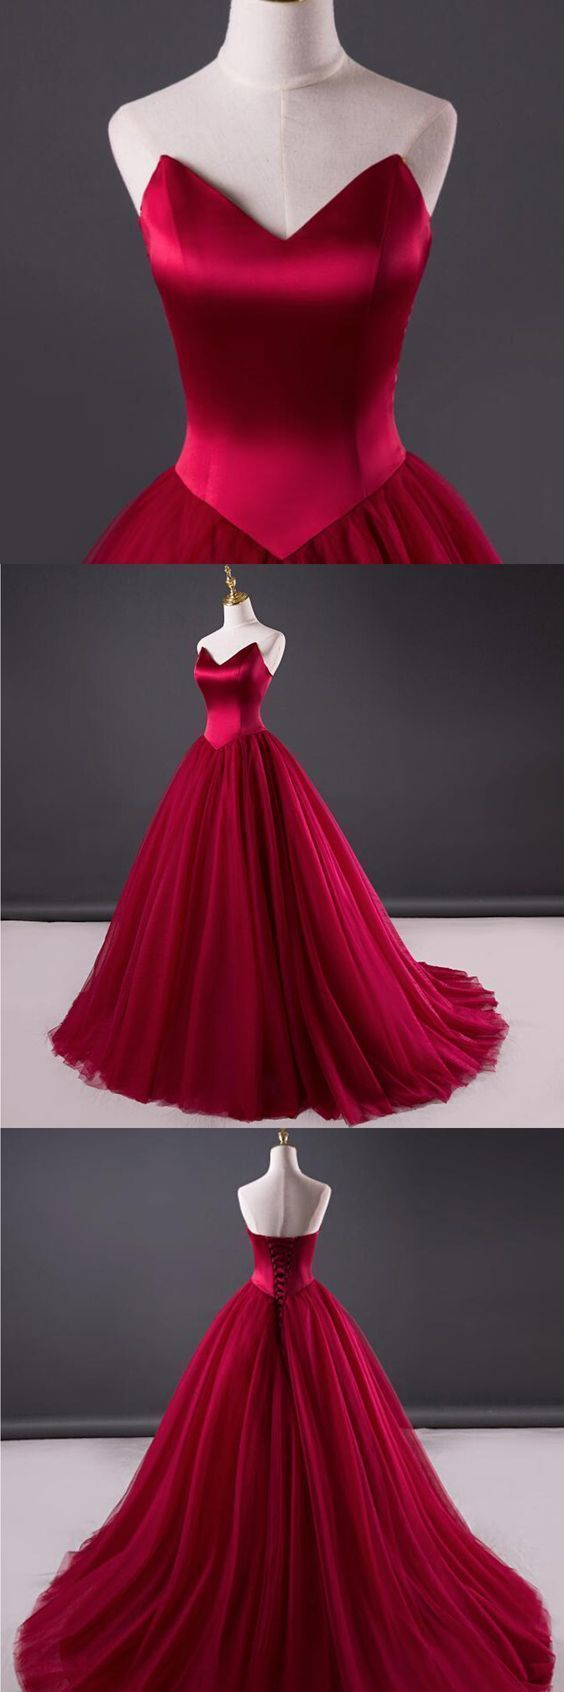 Welcome to our store, thanks for your interest in our dresses, we accept Credit Card and PayPal payment. Dresses can be made with custom sizes and color, wholesale and retail are also warmly welcomed.